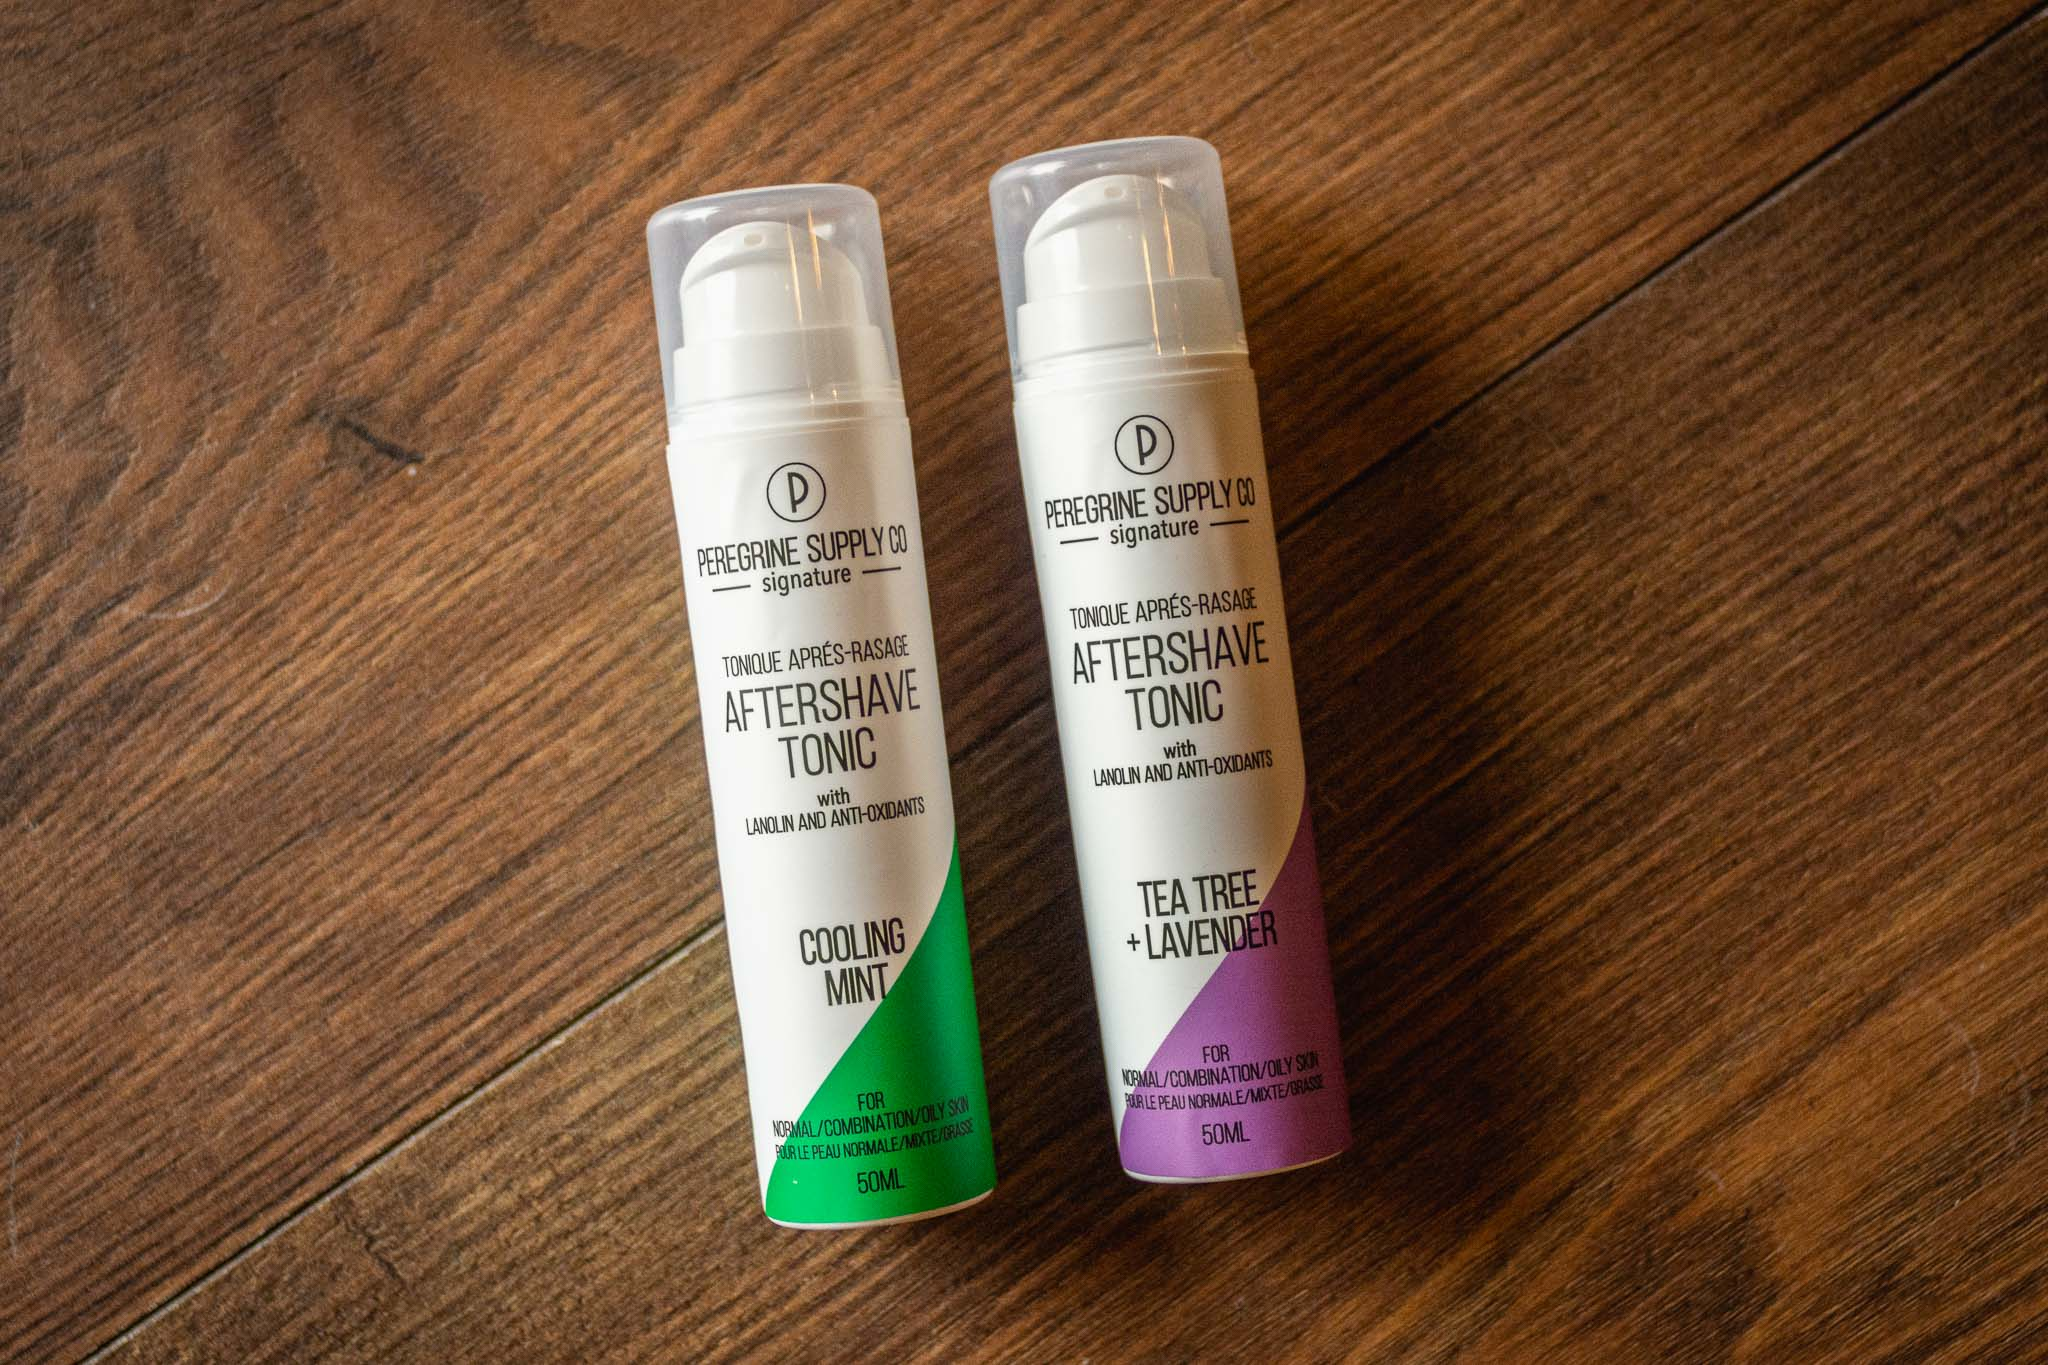 Aftershave Tonic by Peregrine Supply Co